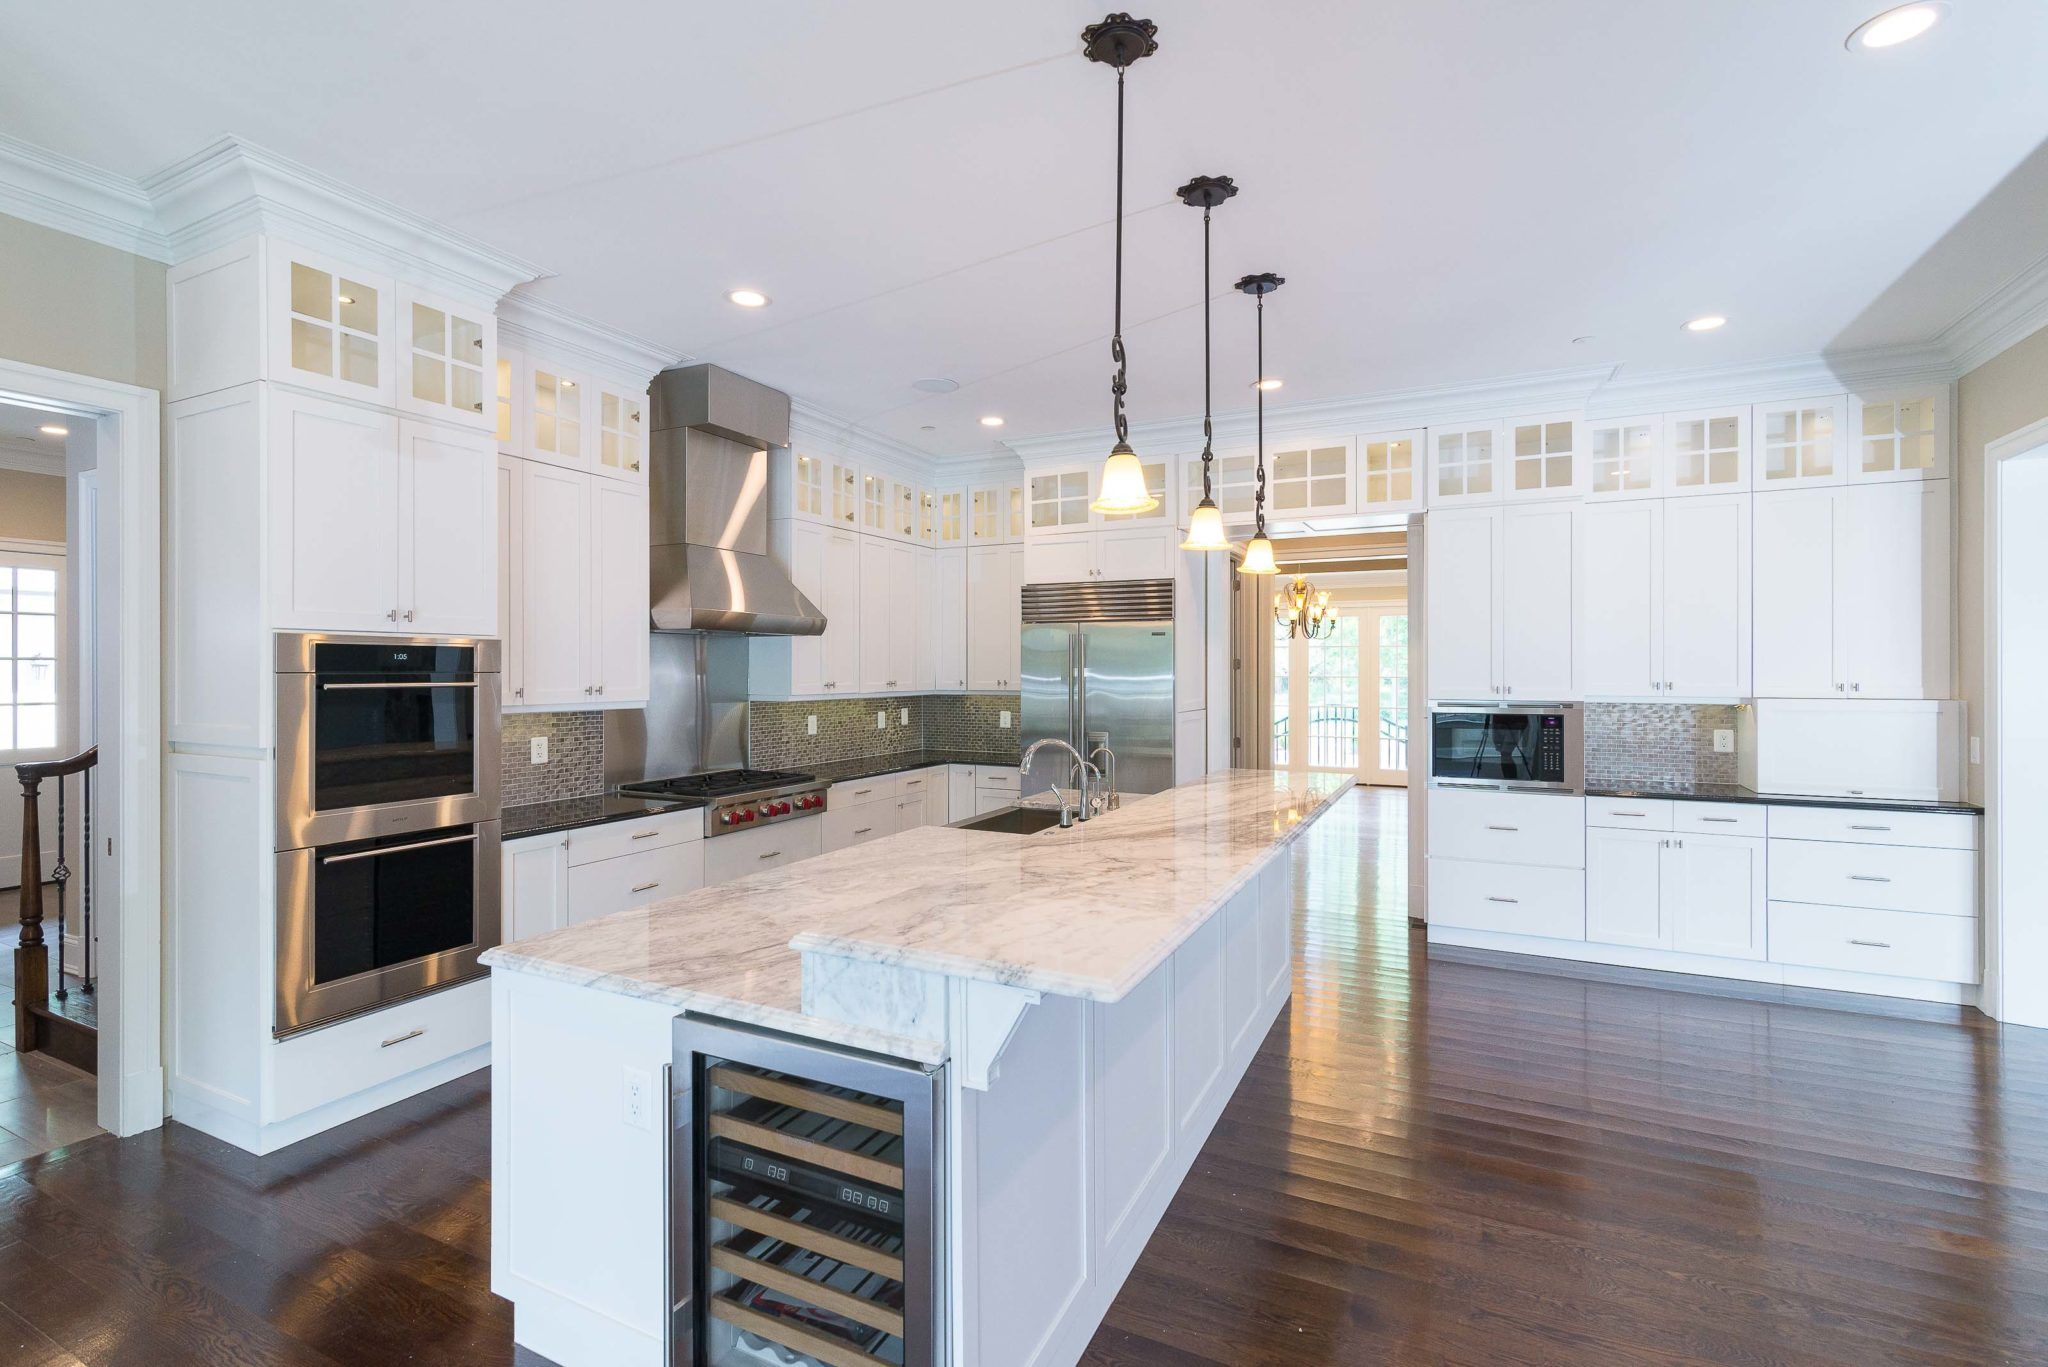 Beautiful, affordable, quality for kitchen and